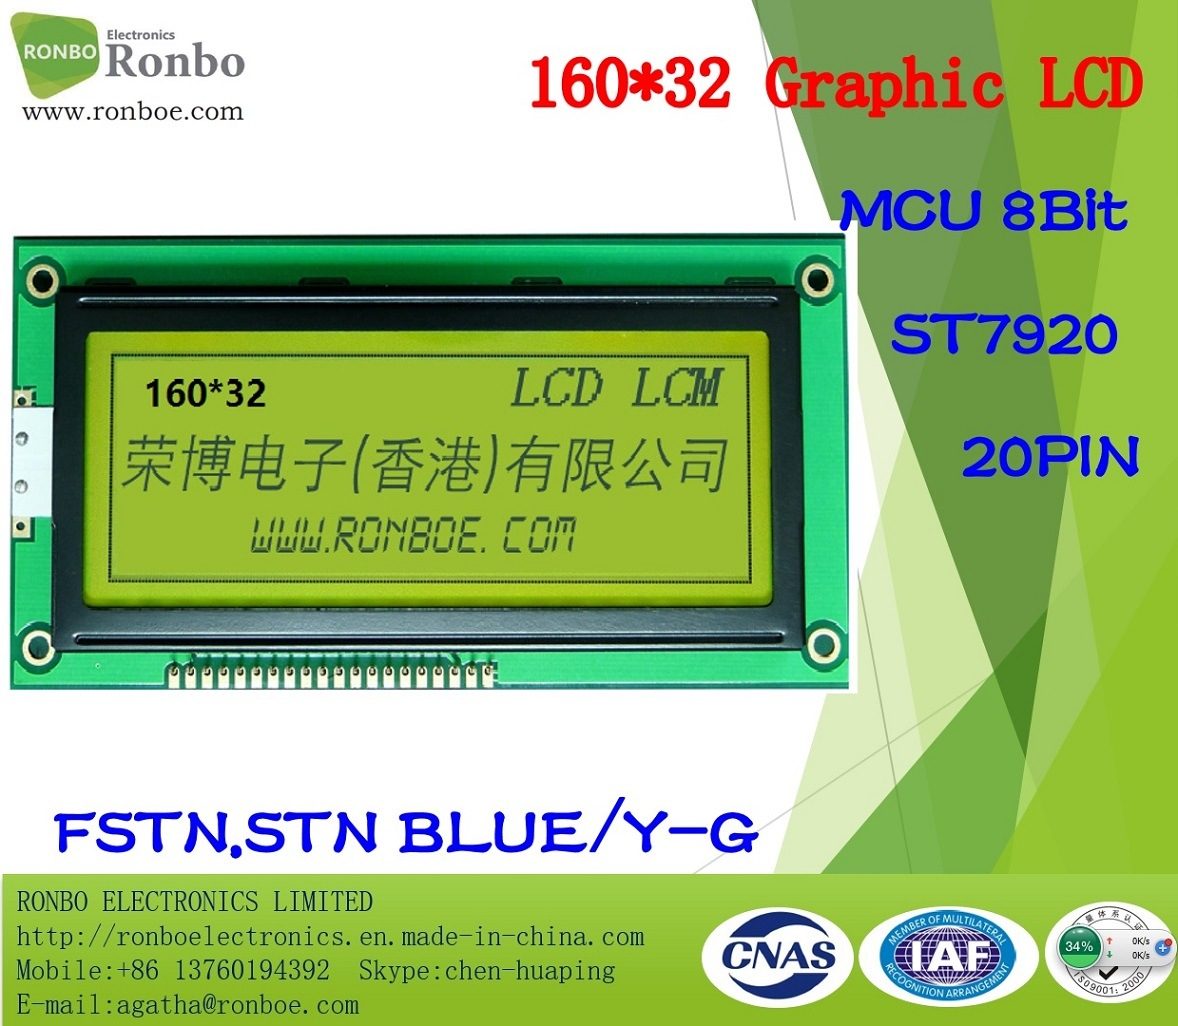 160X32 MCU Graphic LCD Module, St7920, 20pin, for POS, Doorbell, Medical, Cars